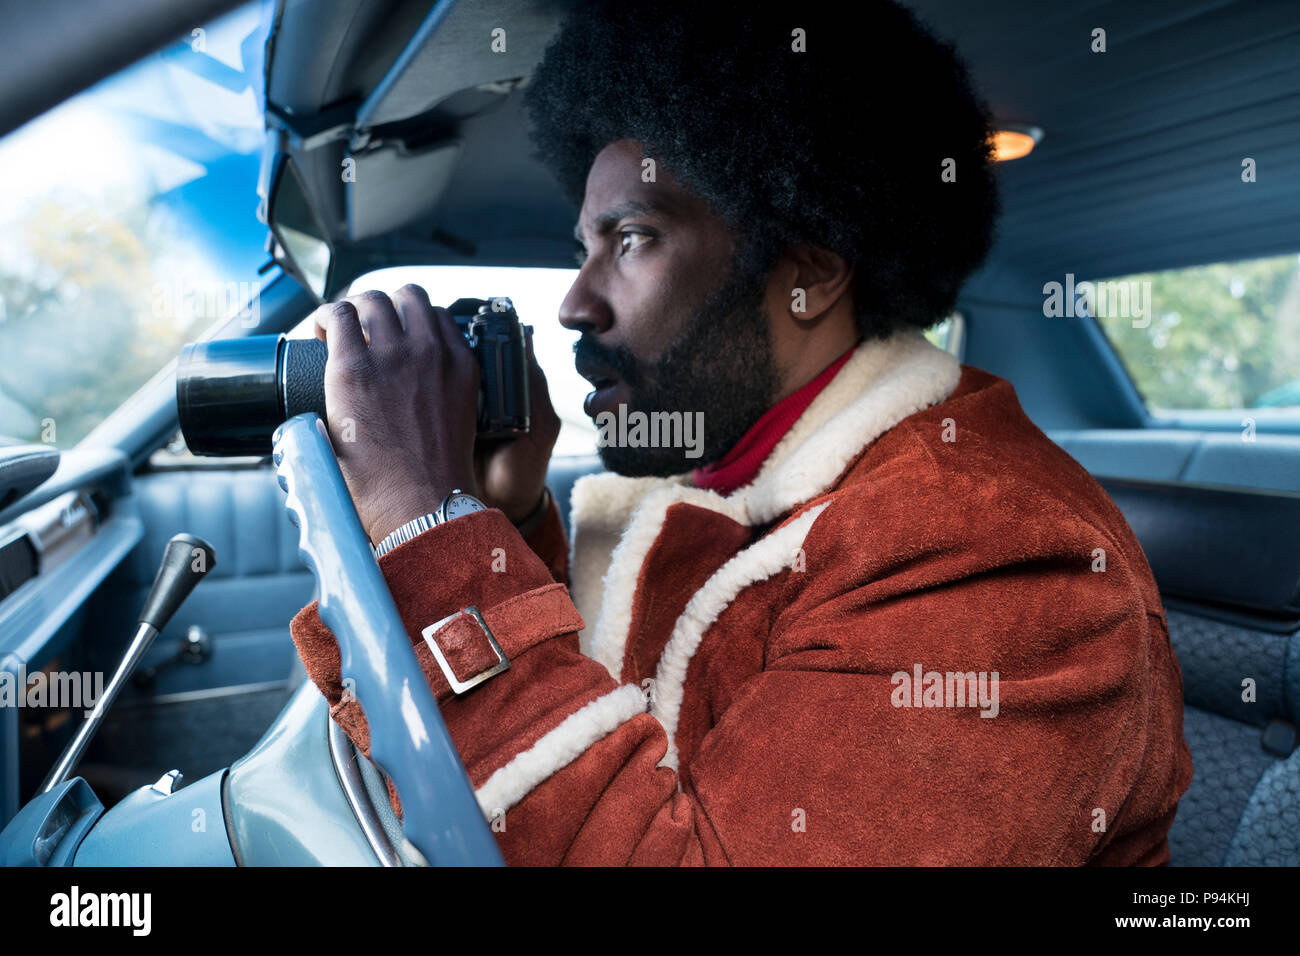 RELEASE DATE: August 10, 2018 TITLE: BlacKkKlansman STUDIO: Focus Features DIRECTOR: Spike Lee PLOT: Ron Stallworth, an African-American police officer from Colorado, successfully managed to infiltrate the local Ku Klux Klan and became the head of the local chapter. STARRING: JOHN DAVID WASHINGTON as Ron Stallworth. (Credit Image: © Focus Features/Entertainment Pictures) - Stock Image